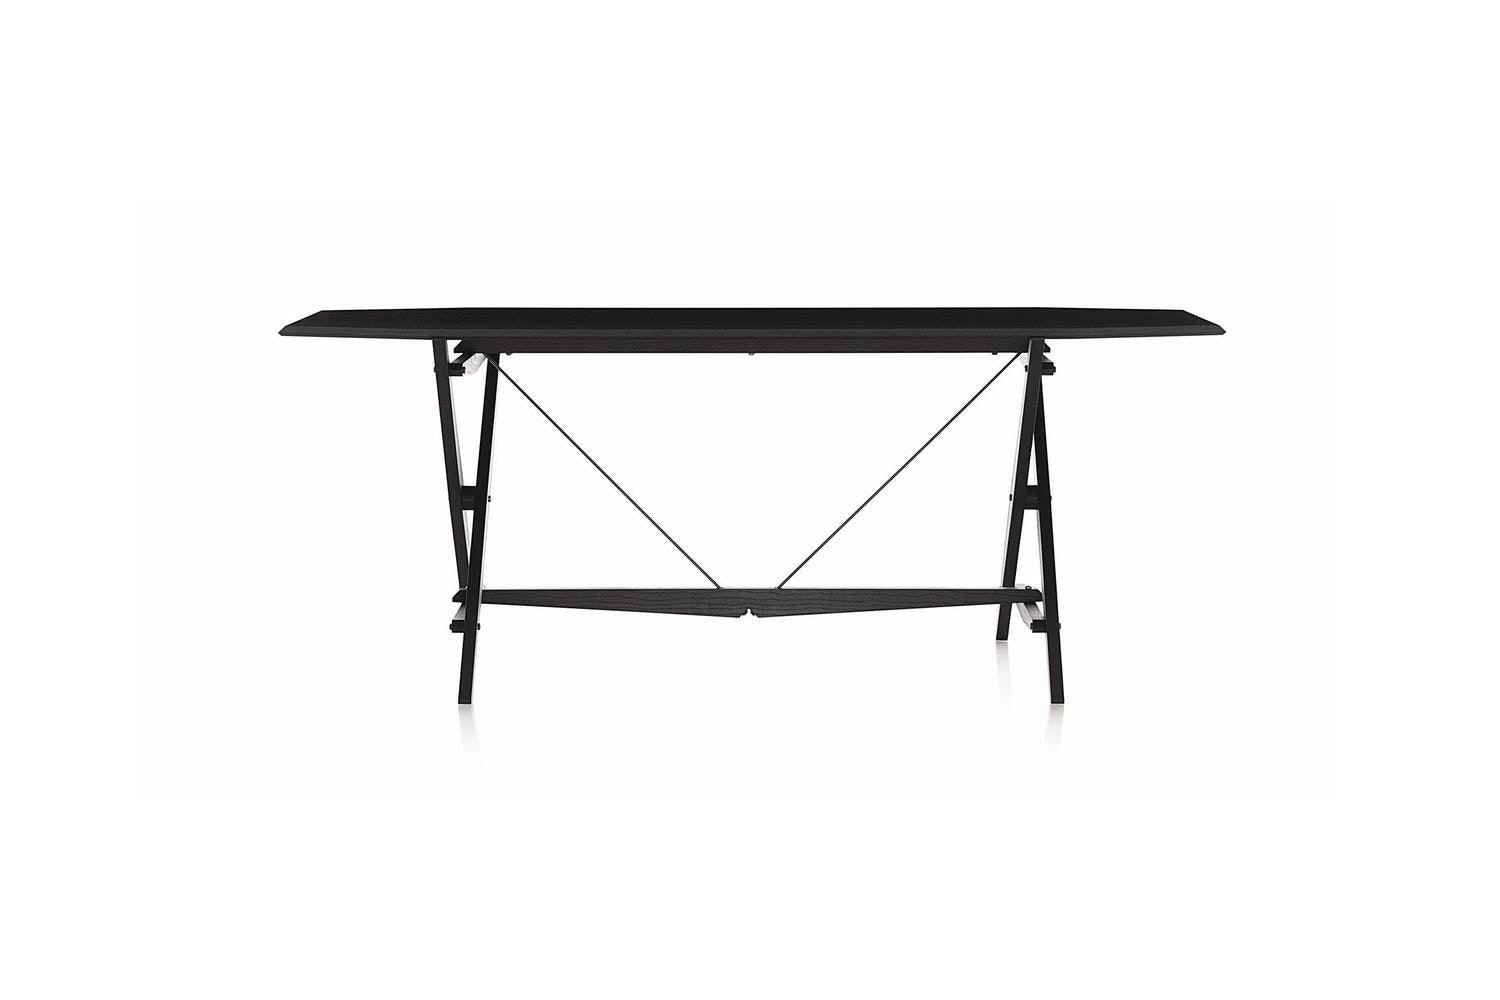 833 Cavalletto Table by Franco Albini for Cassina